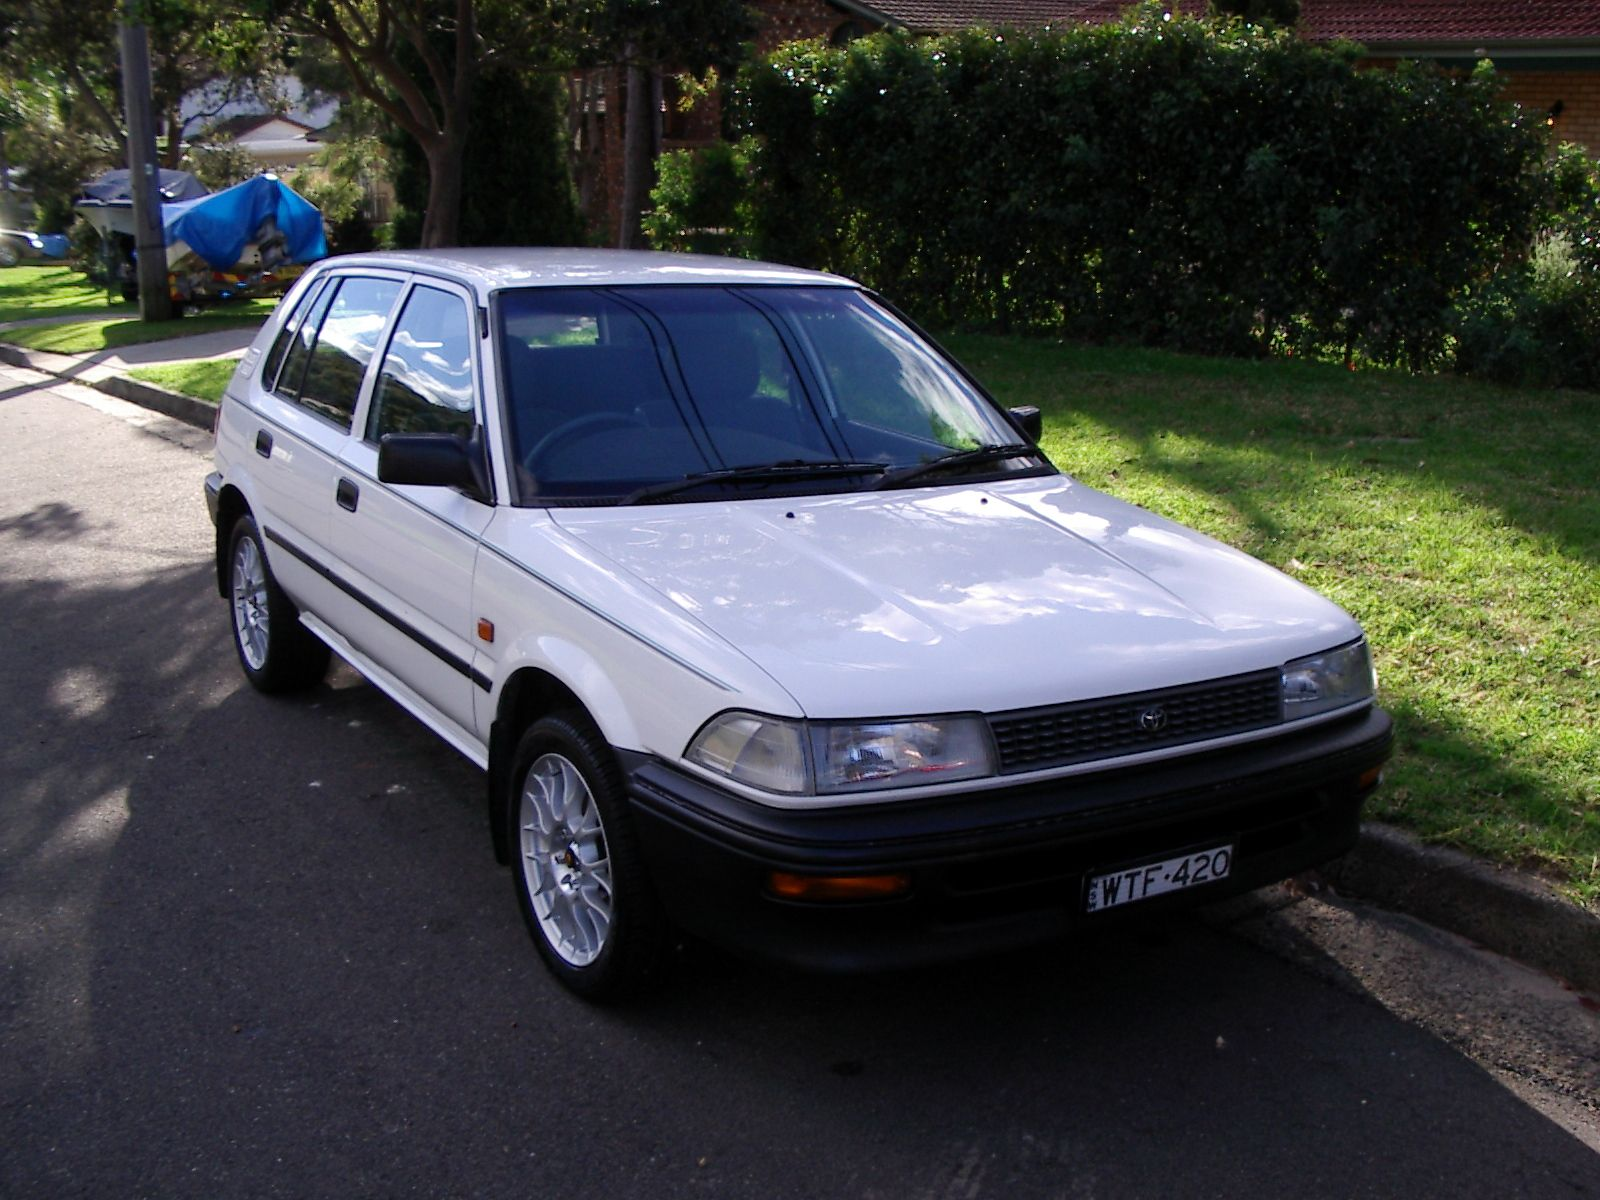 "A photo of a white 1993 Toyota Corolla hatchback with low-profile tyres, lace-style rims, and numberplates that say ""WTF420"". It's very shiny and clean-looking."